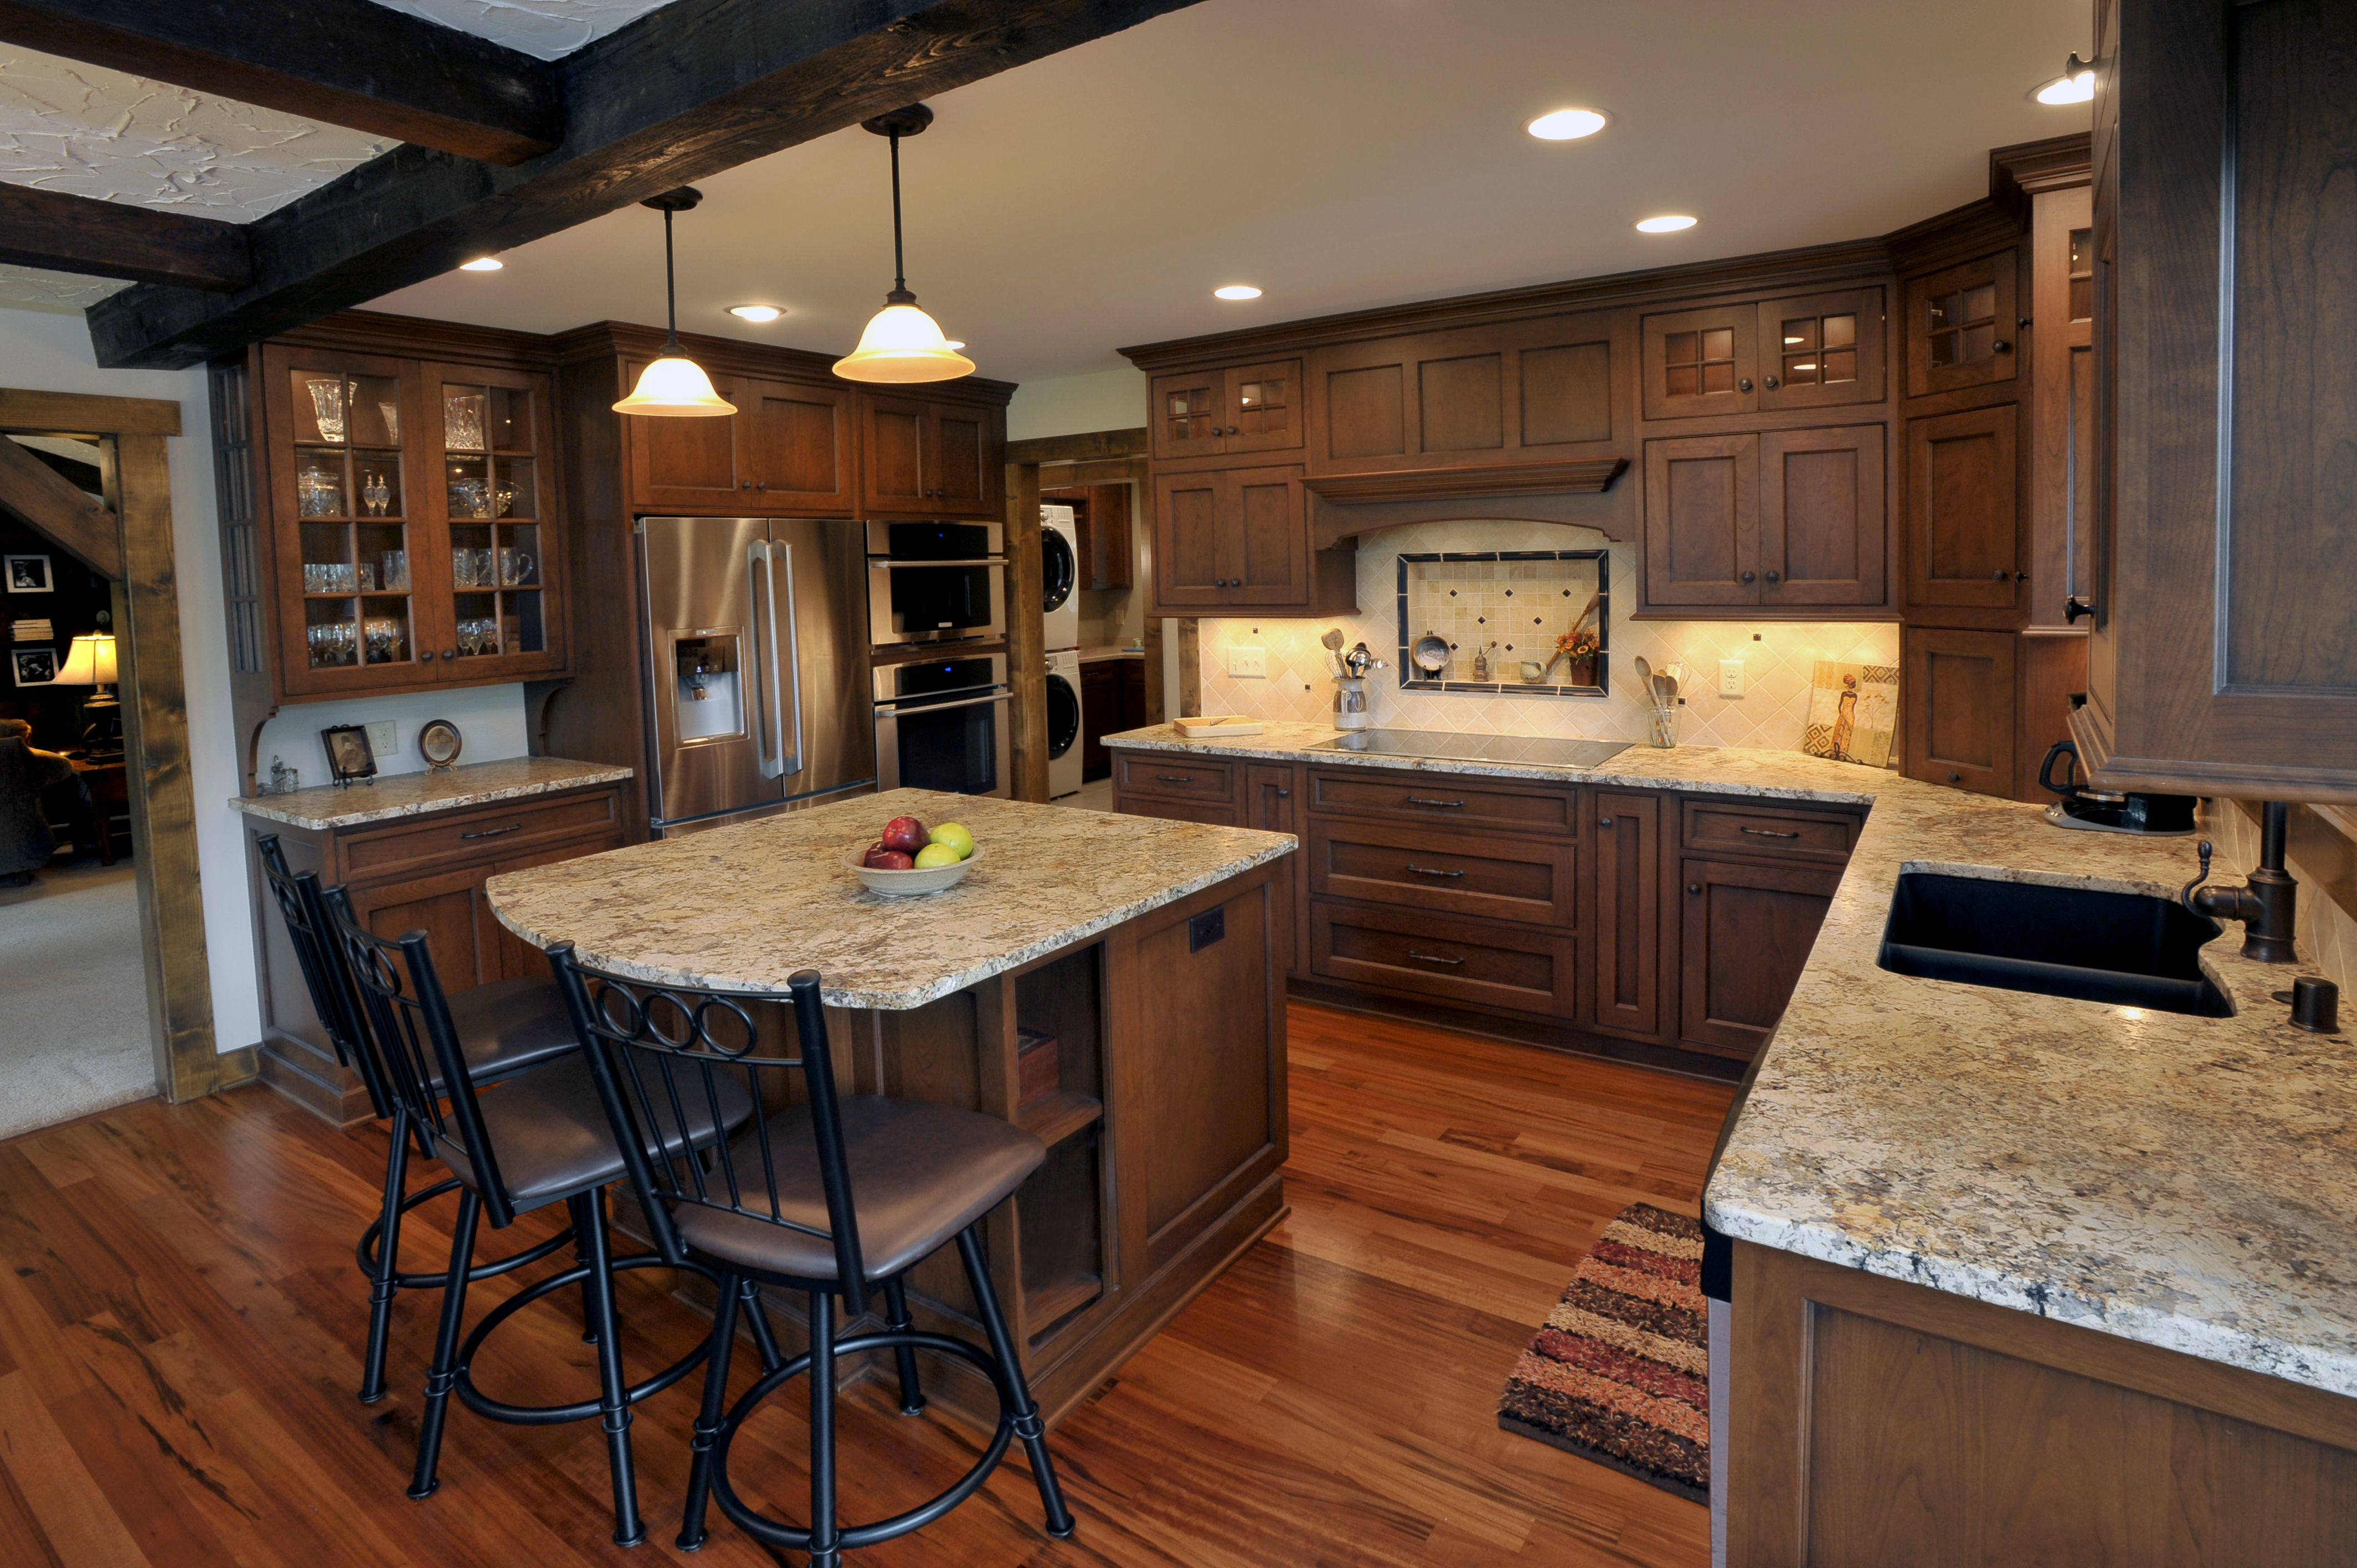 Winner Of Wisconsin Remodeler S Award S J Janis Company Cherry Cabinets Kitchen Kitchen Design Kitchen Remodel